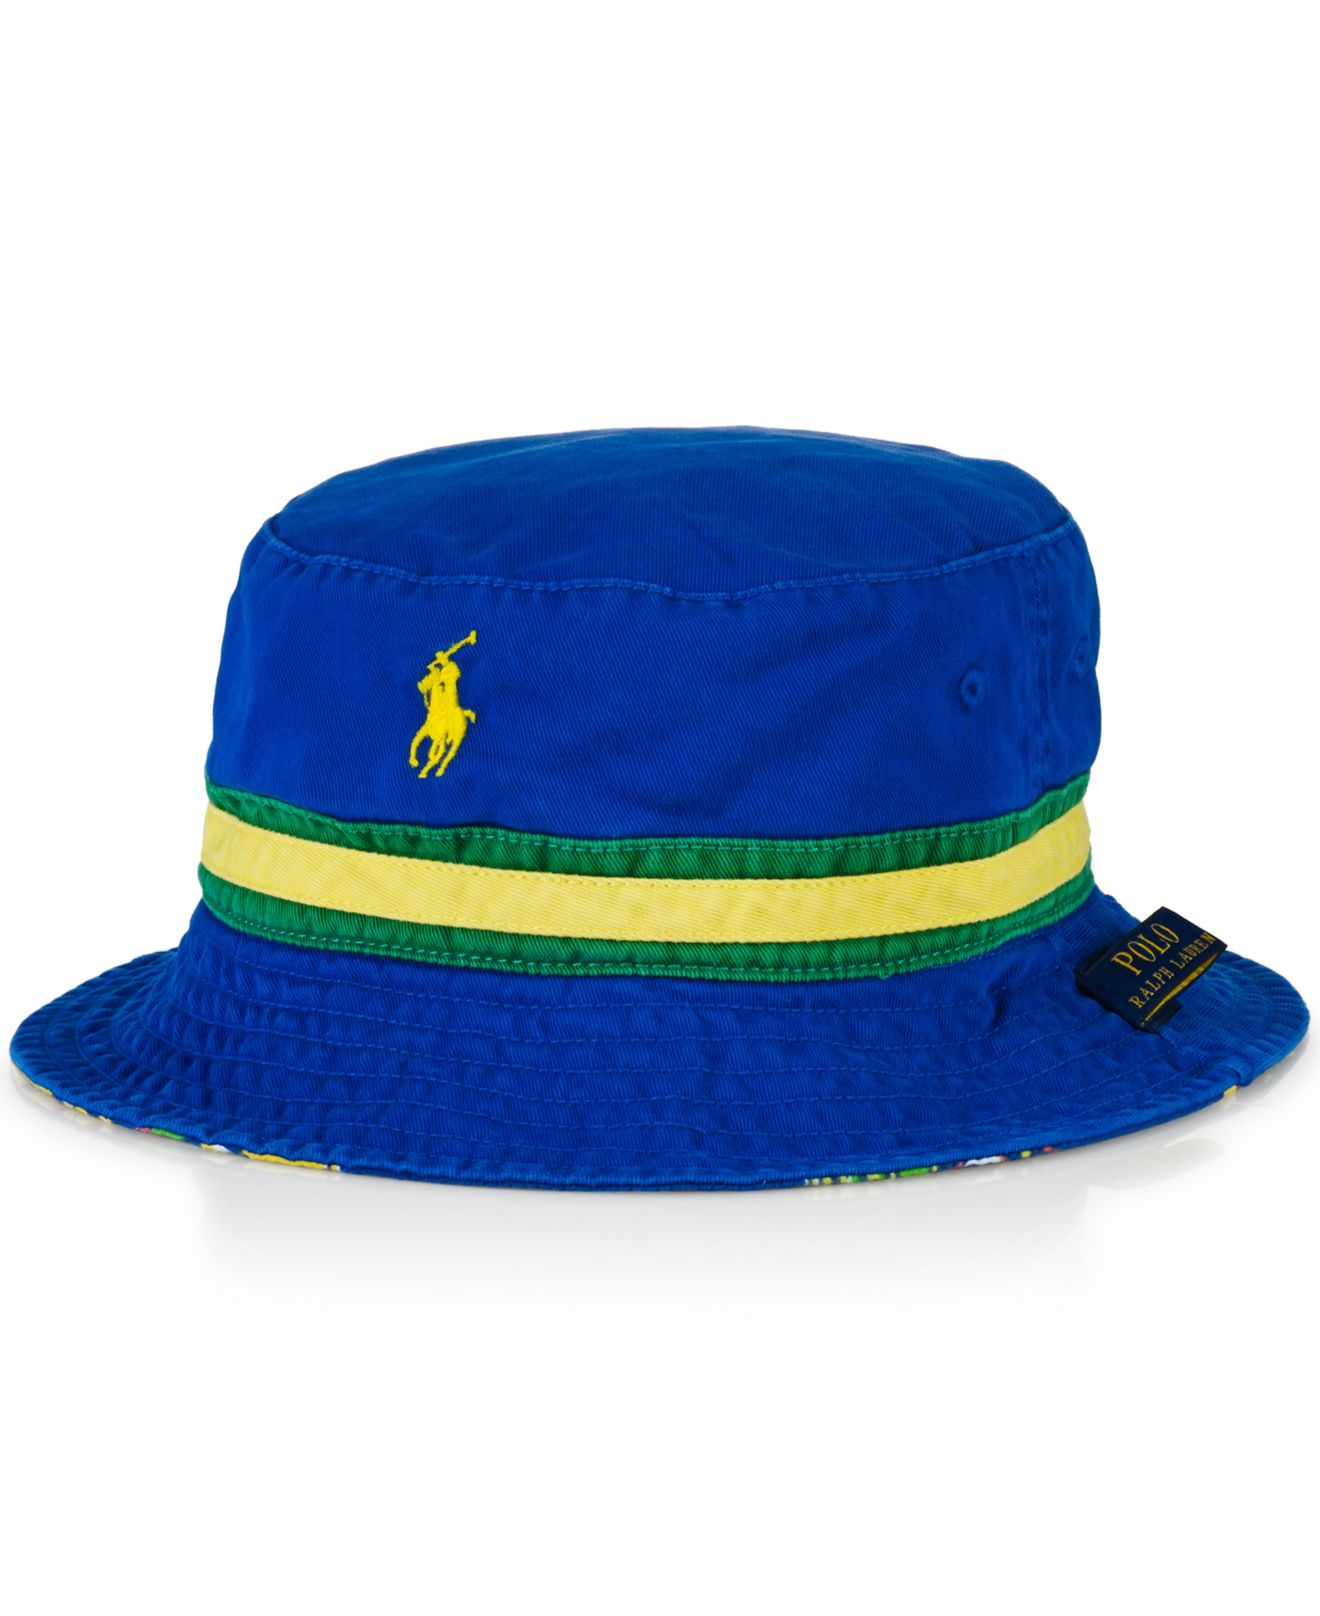 c27ac1d740410 Polo Ralph Lauren Reversible Bucket Hat in Blue for Men - Lyst